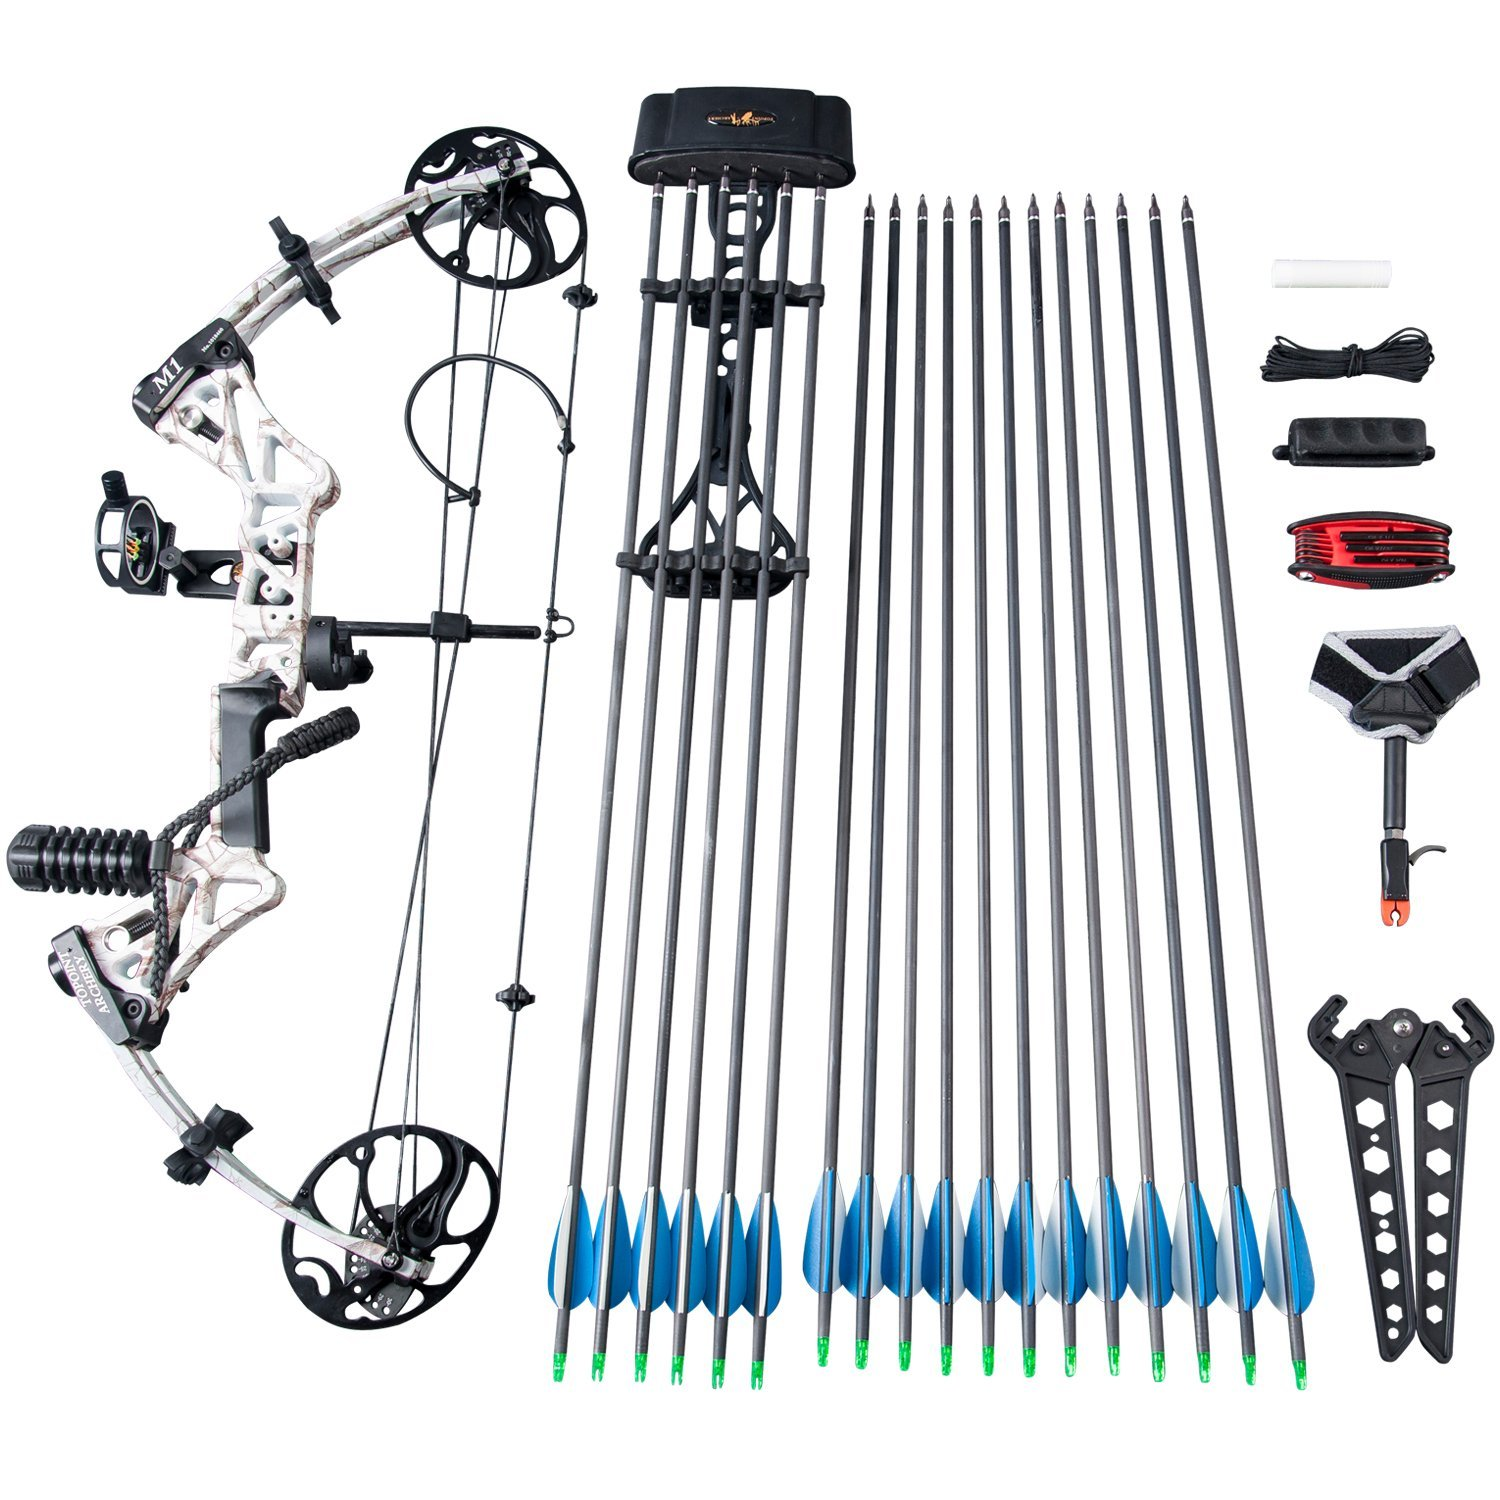 Cheap Fps Bow Find Fps Bow Deals On Line At Alibaba Com